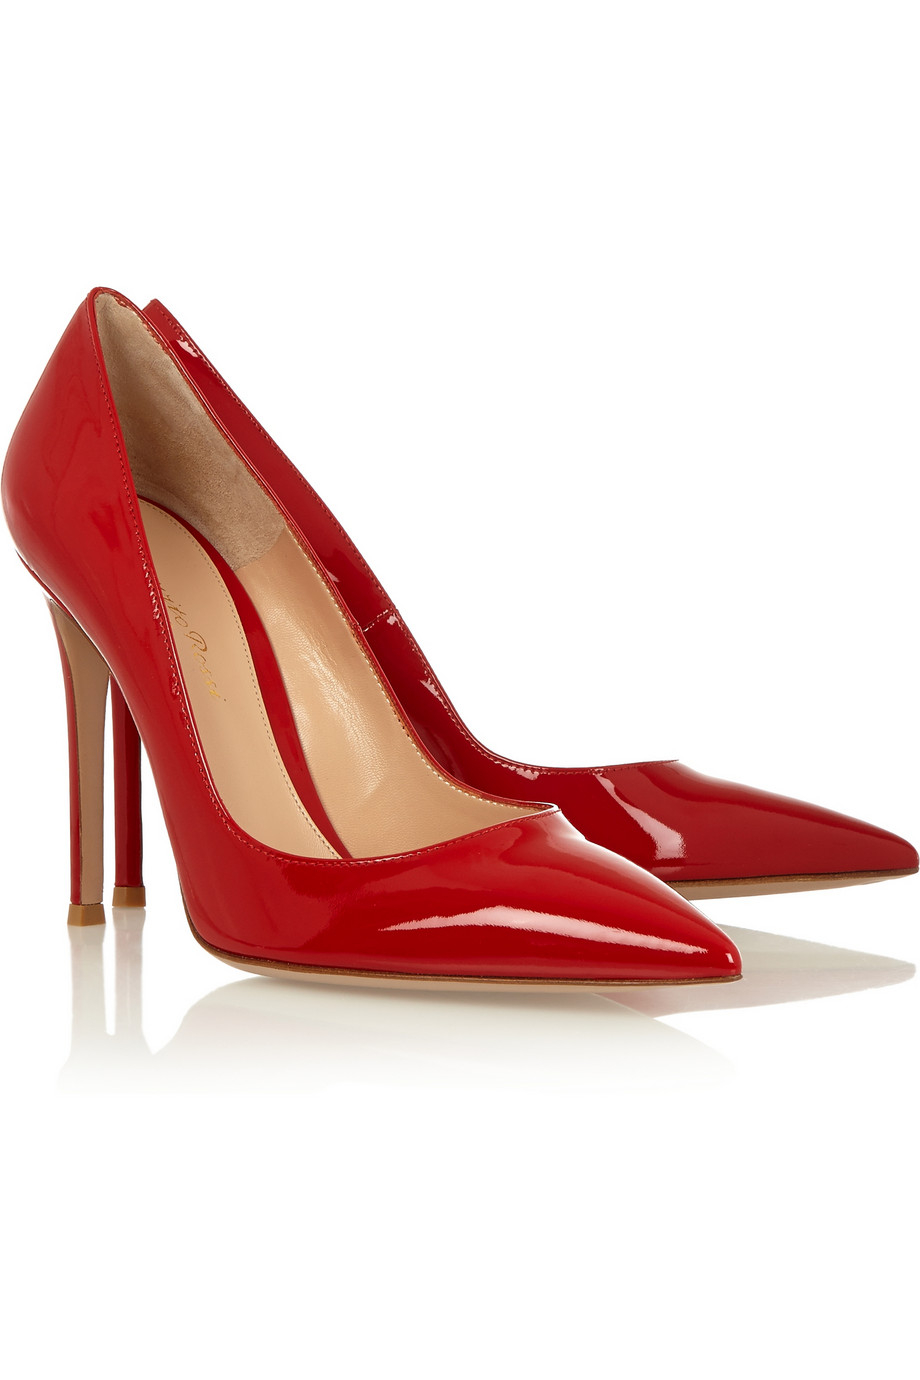 Red patent pumps with white ankle socks